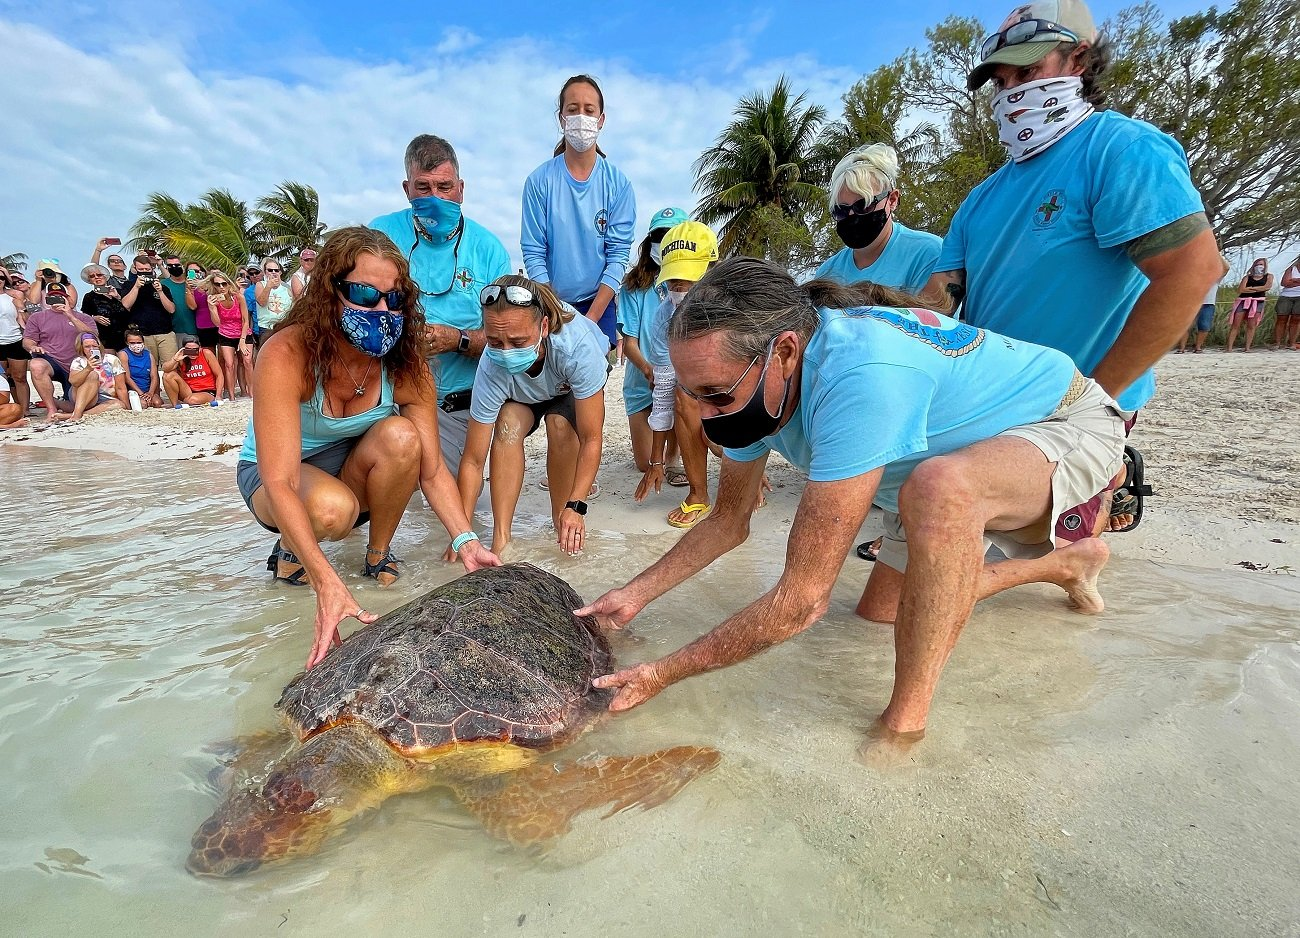 """Bette Zirkelbach and Richie Moretti, Florida Keys-based Turtle Hospital's manager and founder, respectively, release """"Sparb"""", a sub-adult loggerhead sea turtle, at Sombrero Beach in Marathon, Florida, U.S., April 22, 2021. Andy Newman/Florida Keys News Bureau/Handout via REUTERS"""